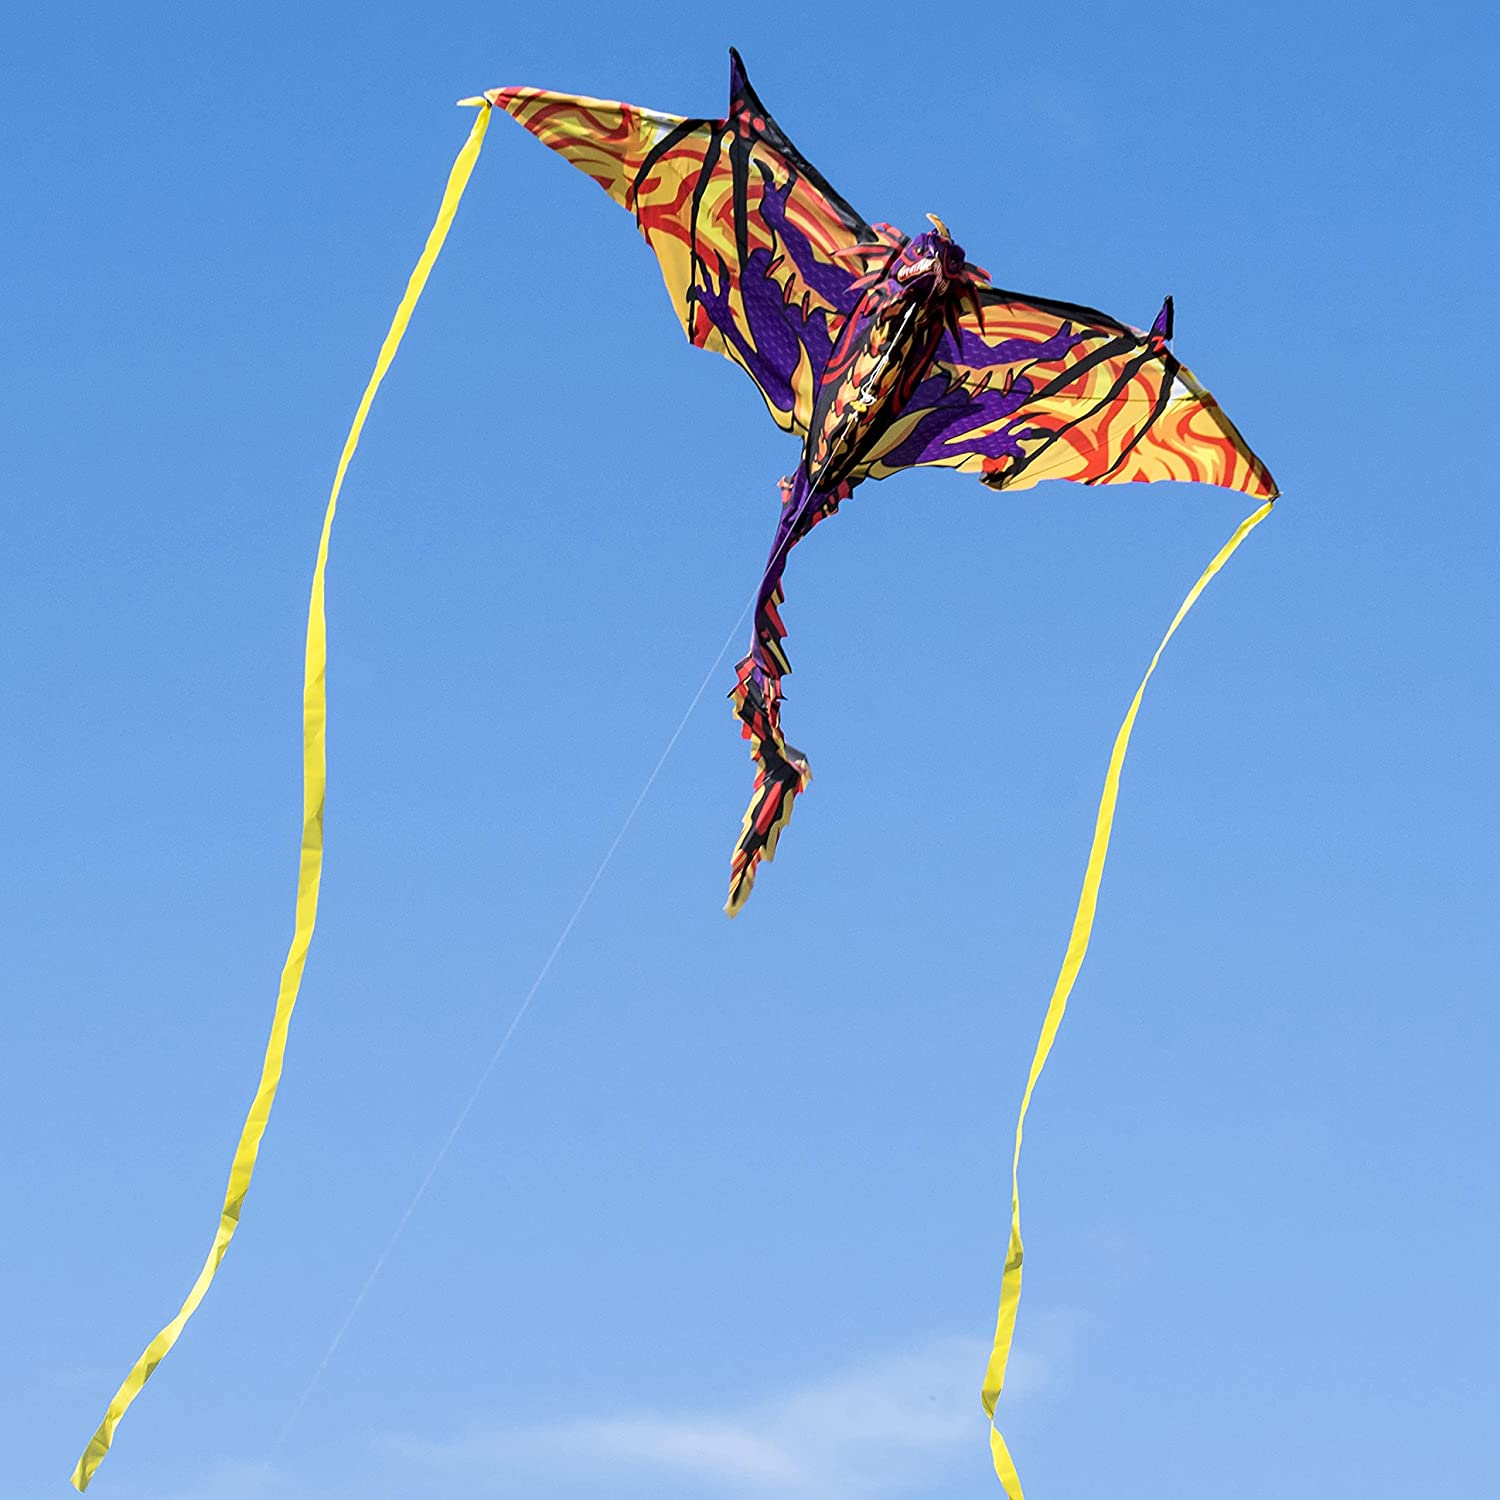 24. 3D Dragon Kite with Kite String for Kids and Adults